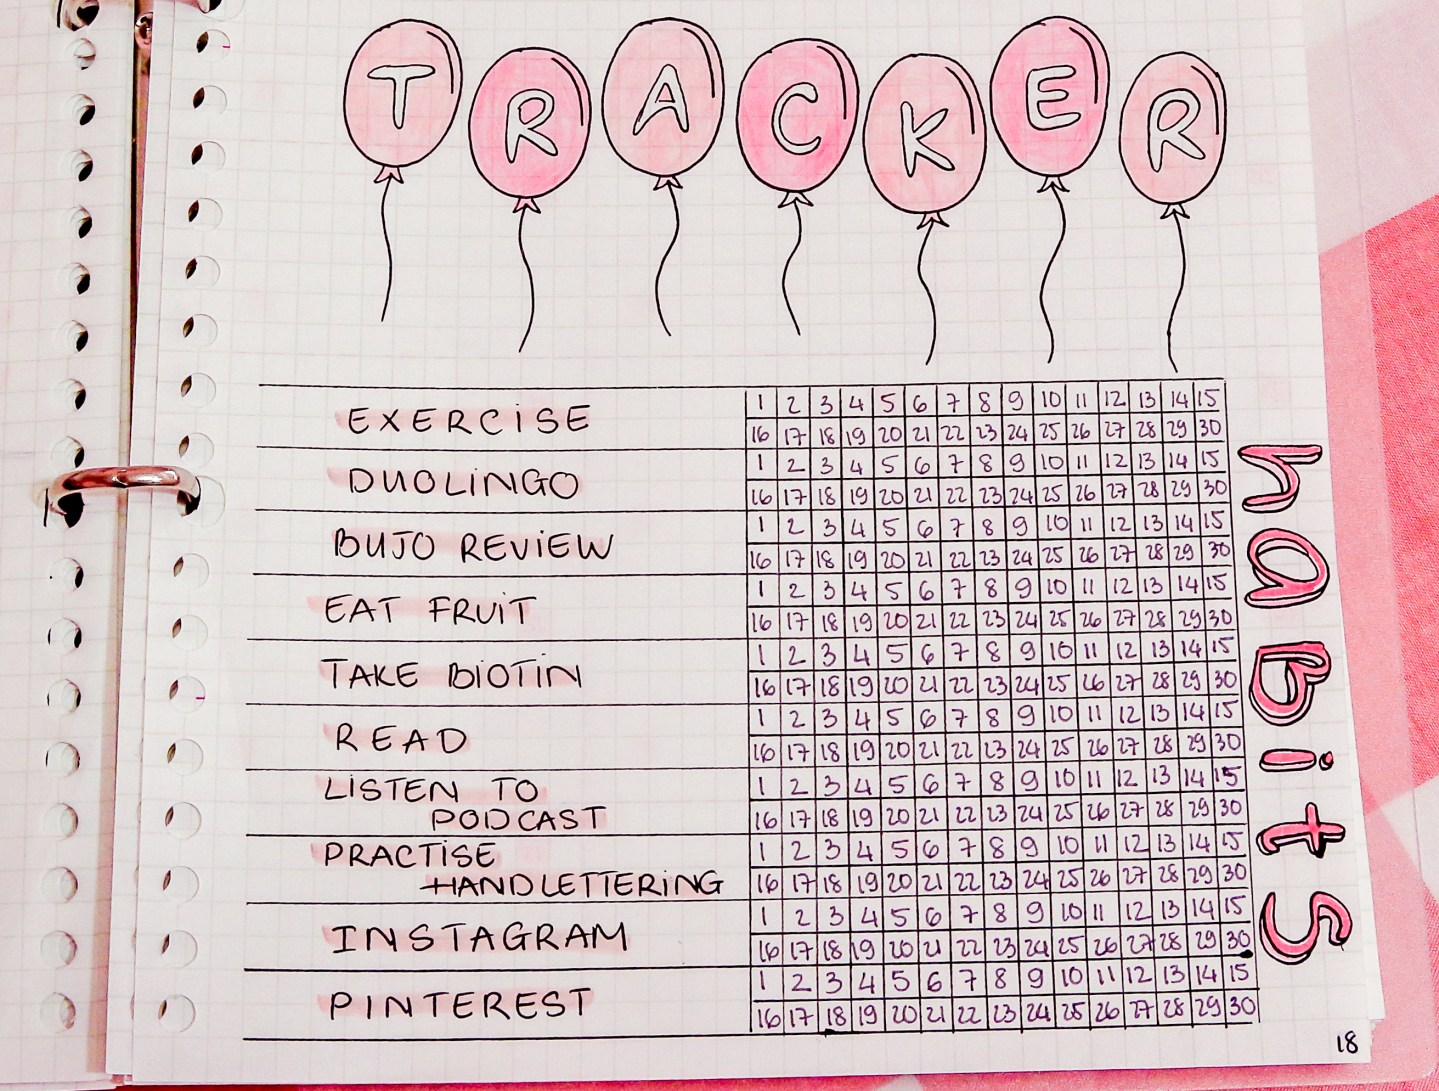 10 Best Habit Trackers to Copy in Your Bullet Journal (Free Printables Included)